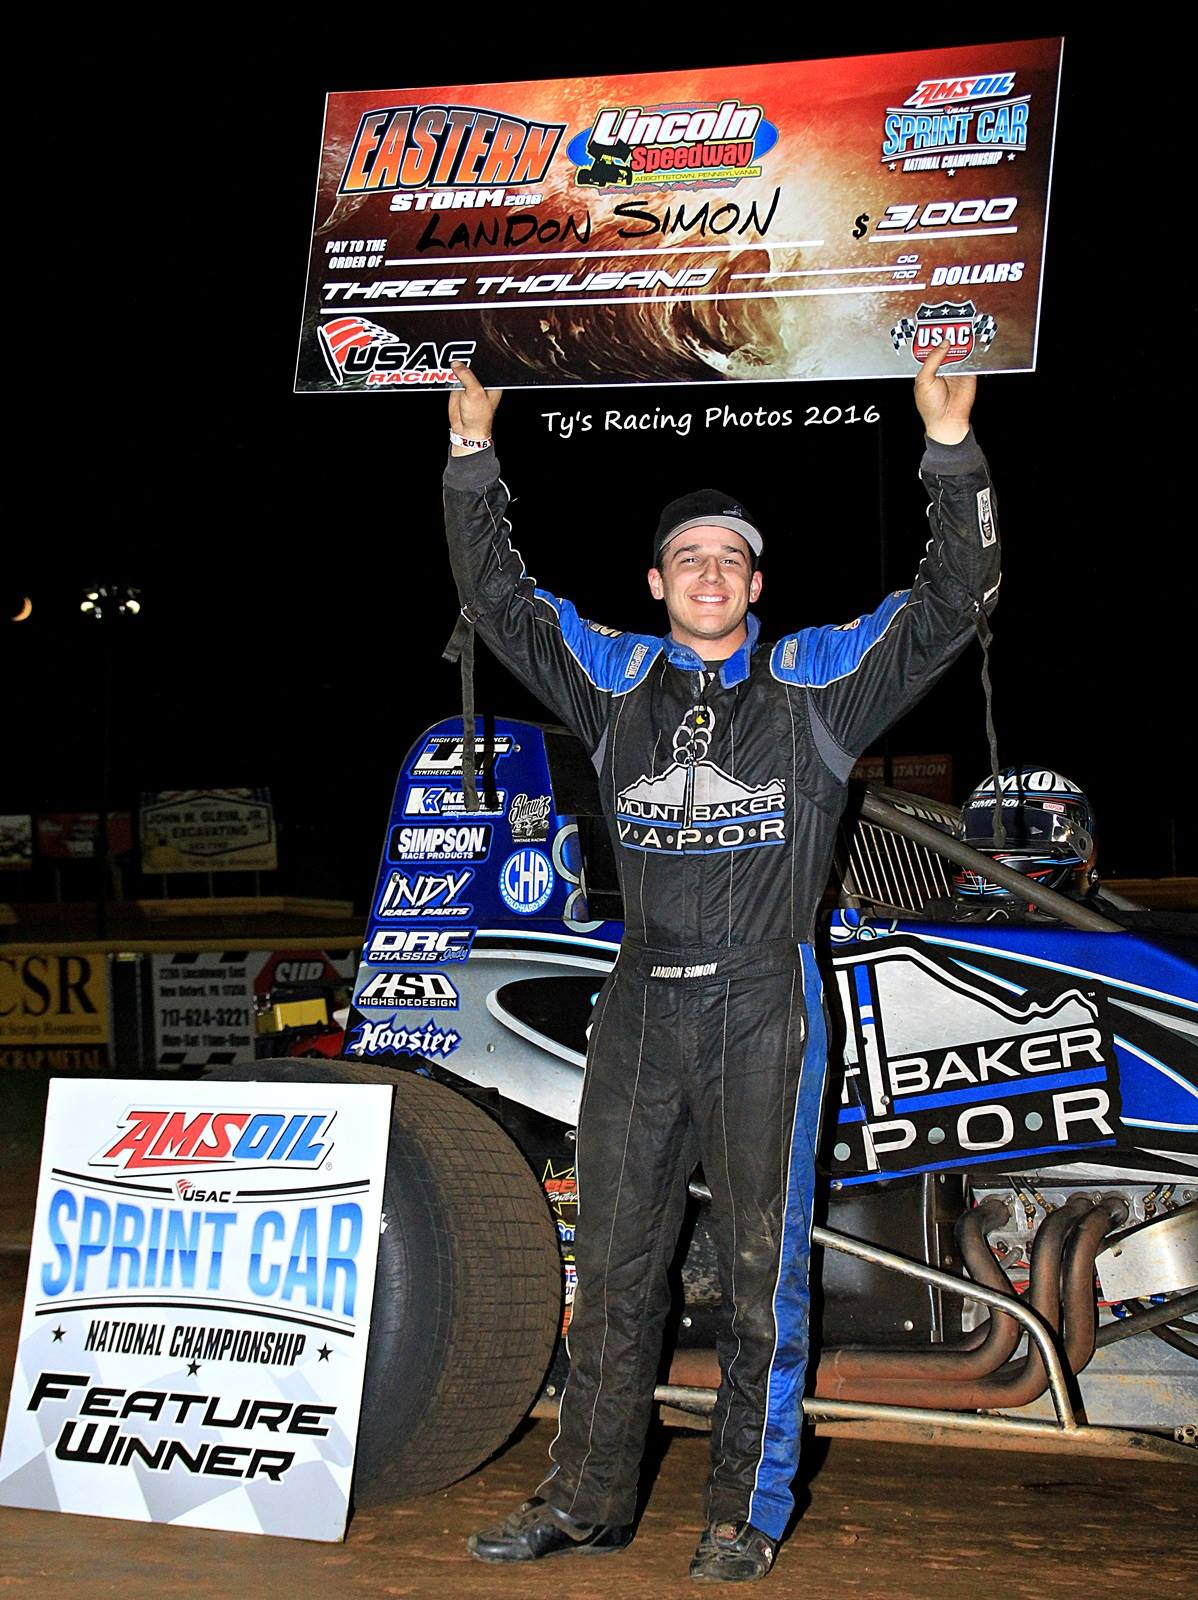 """Simon Scores In Lincoln Usac Sprint """"Special Event"""""""